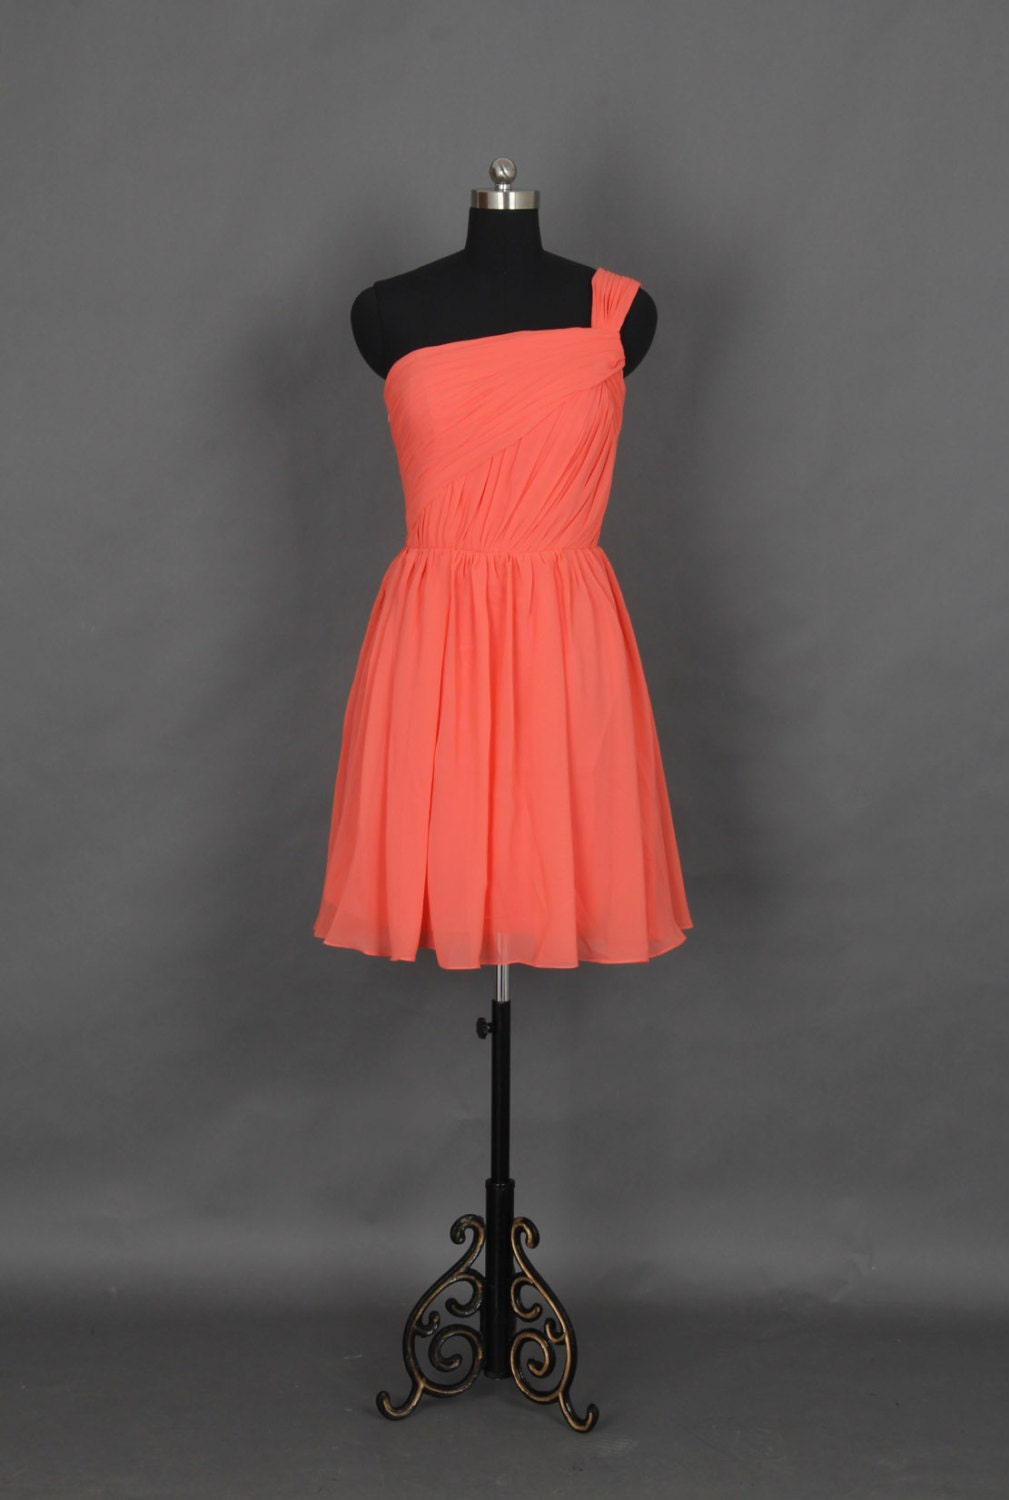 Popular One Shoulder Short Bridesmaid Dress, Coral Chiffon Dress